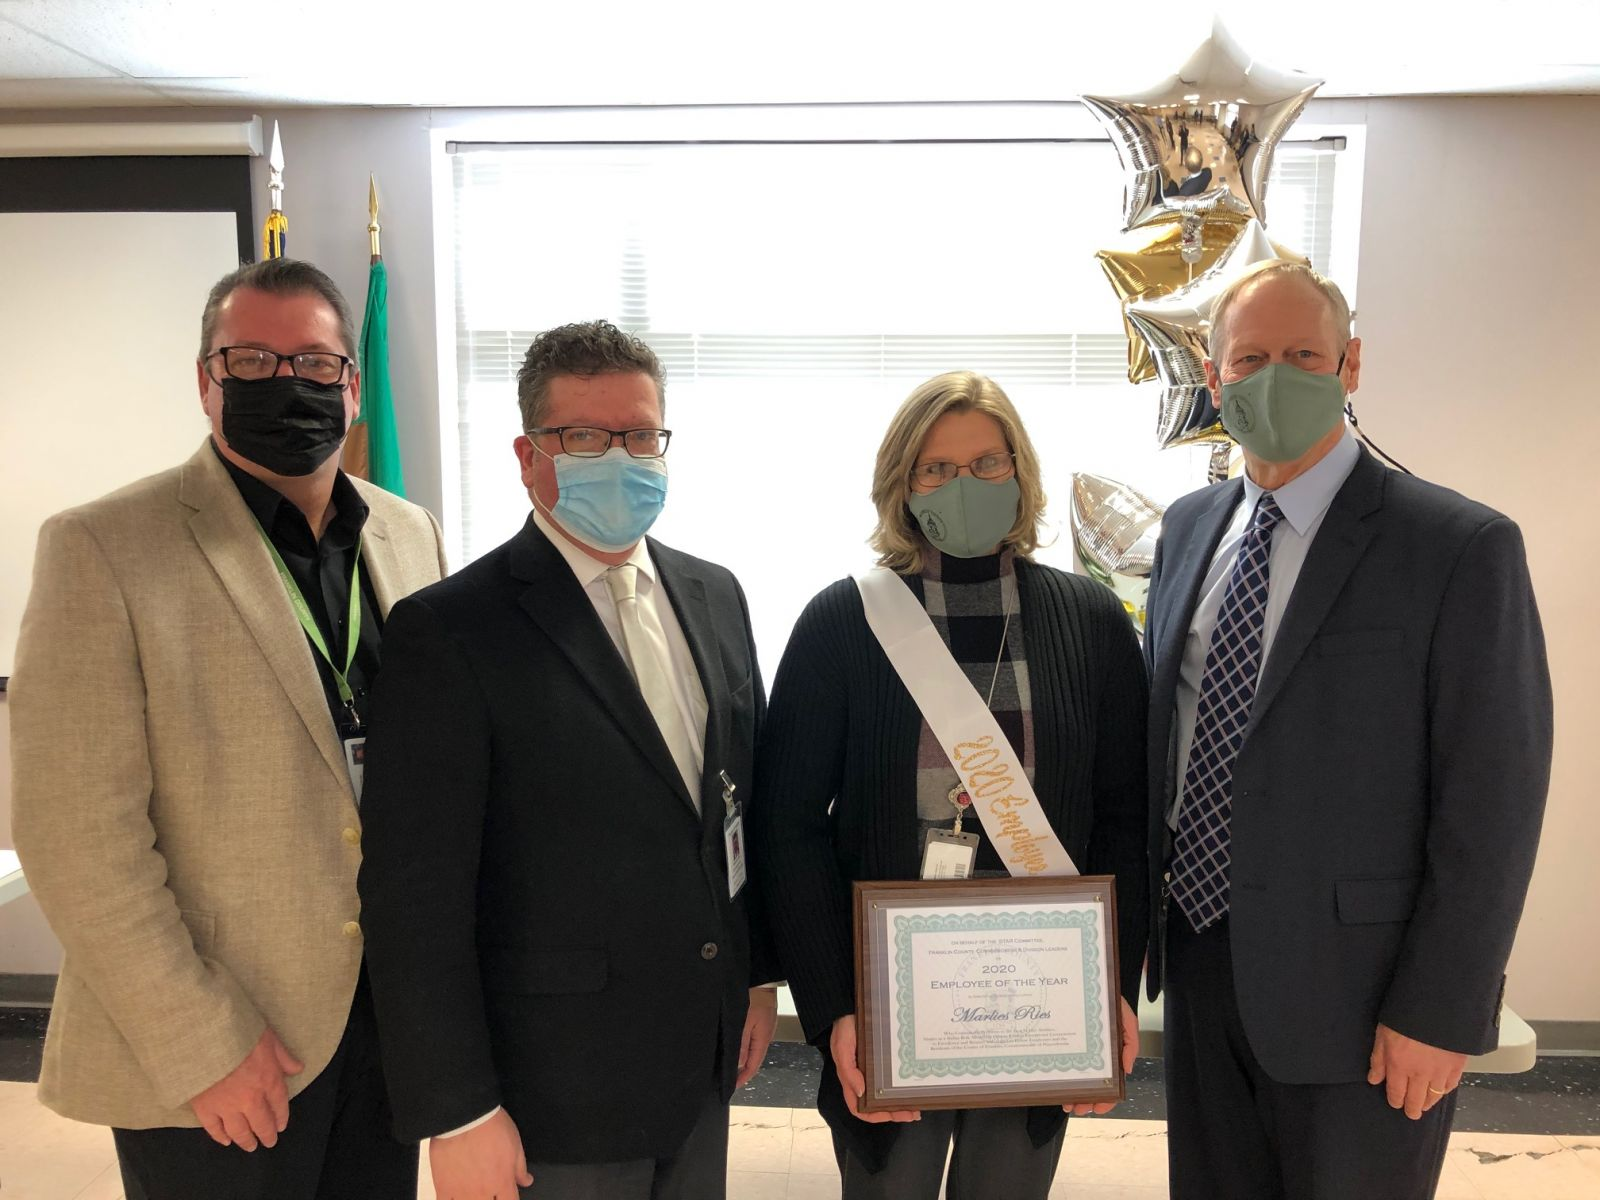 Pictured above (left to right): Commissioner John Flannery, Commissioner Chairman Dave Keller, 2020 Employee of the Year - AIS/Accounting Manager Marlies Ries, and Commissioner Bob Ziobrowski